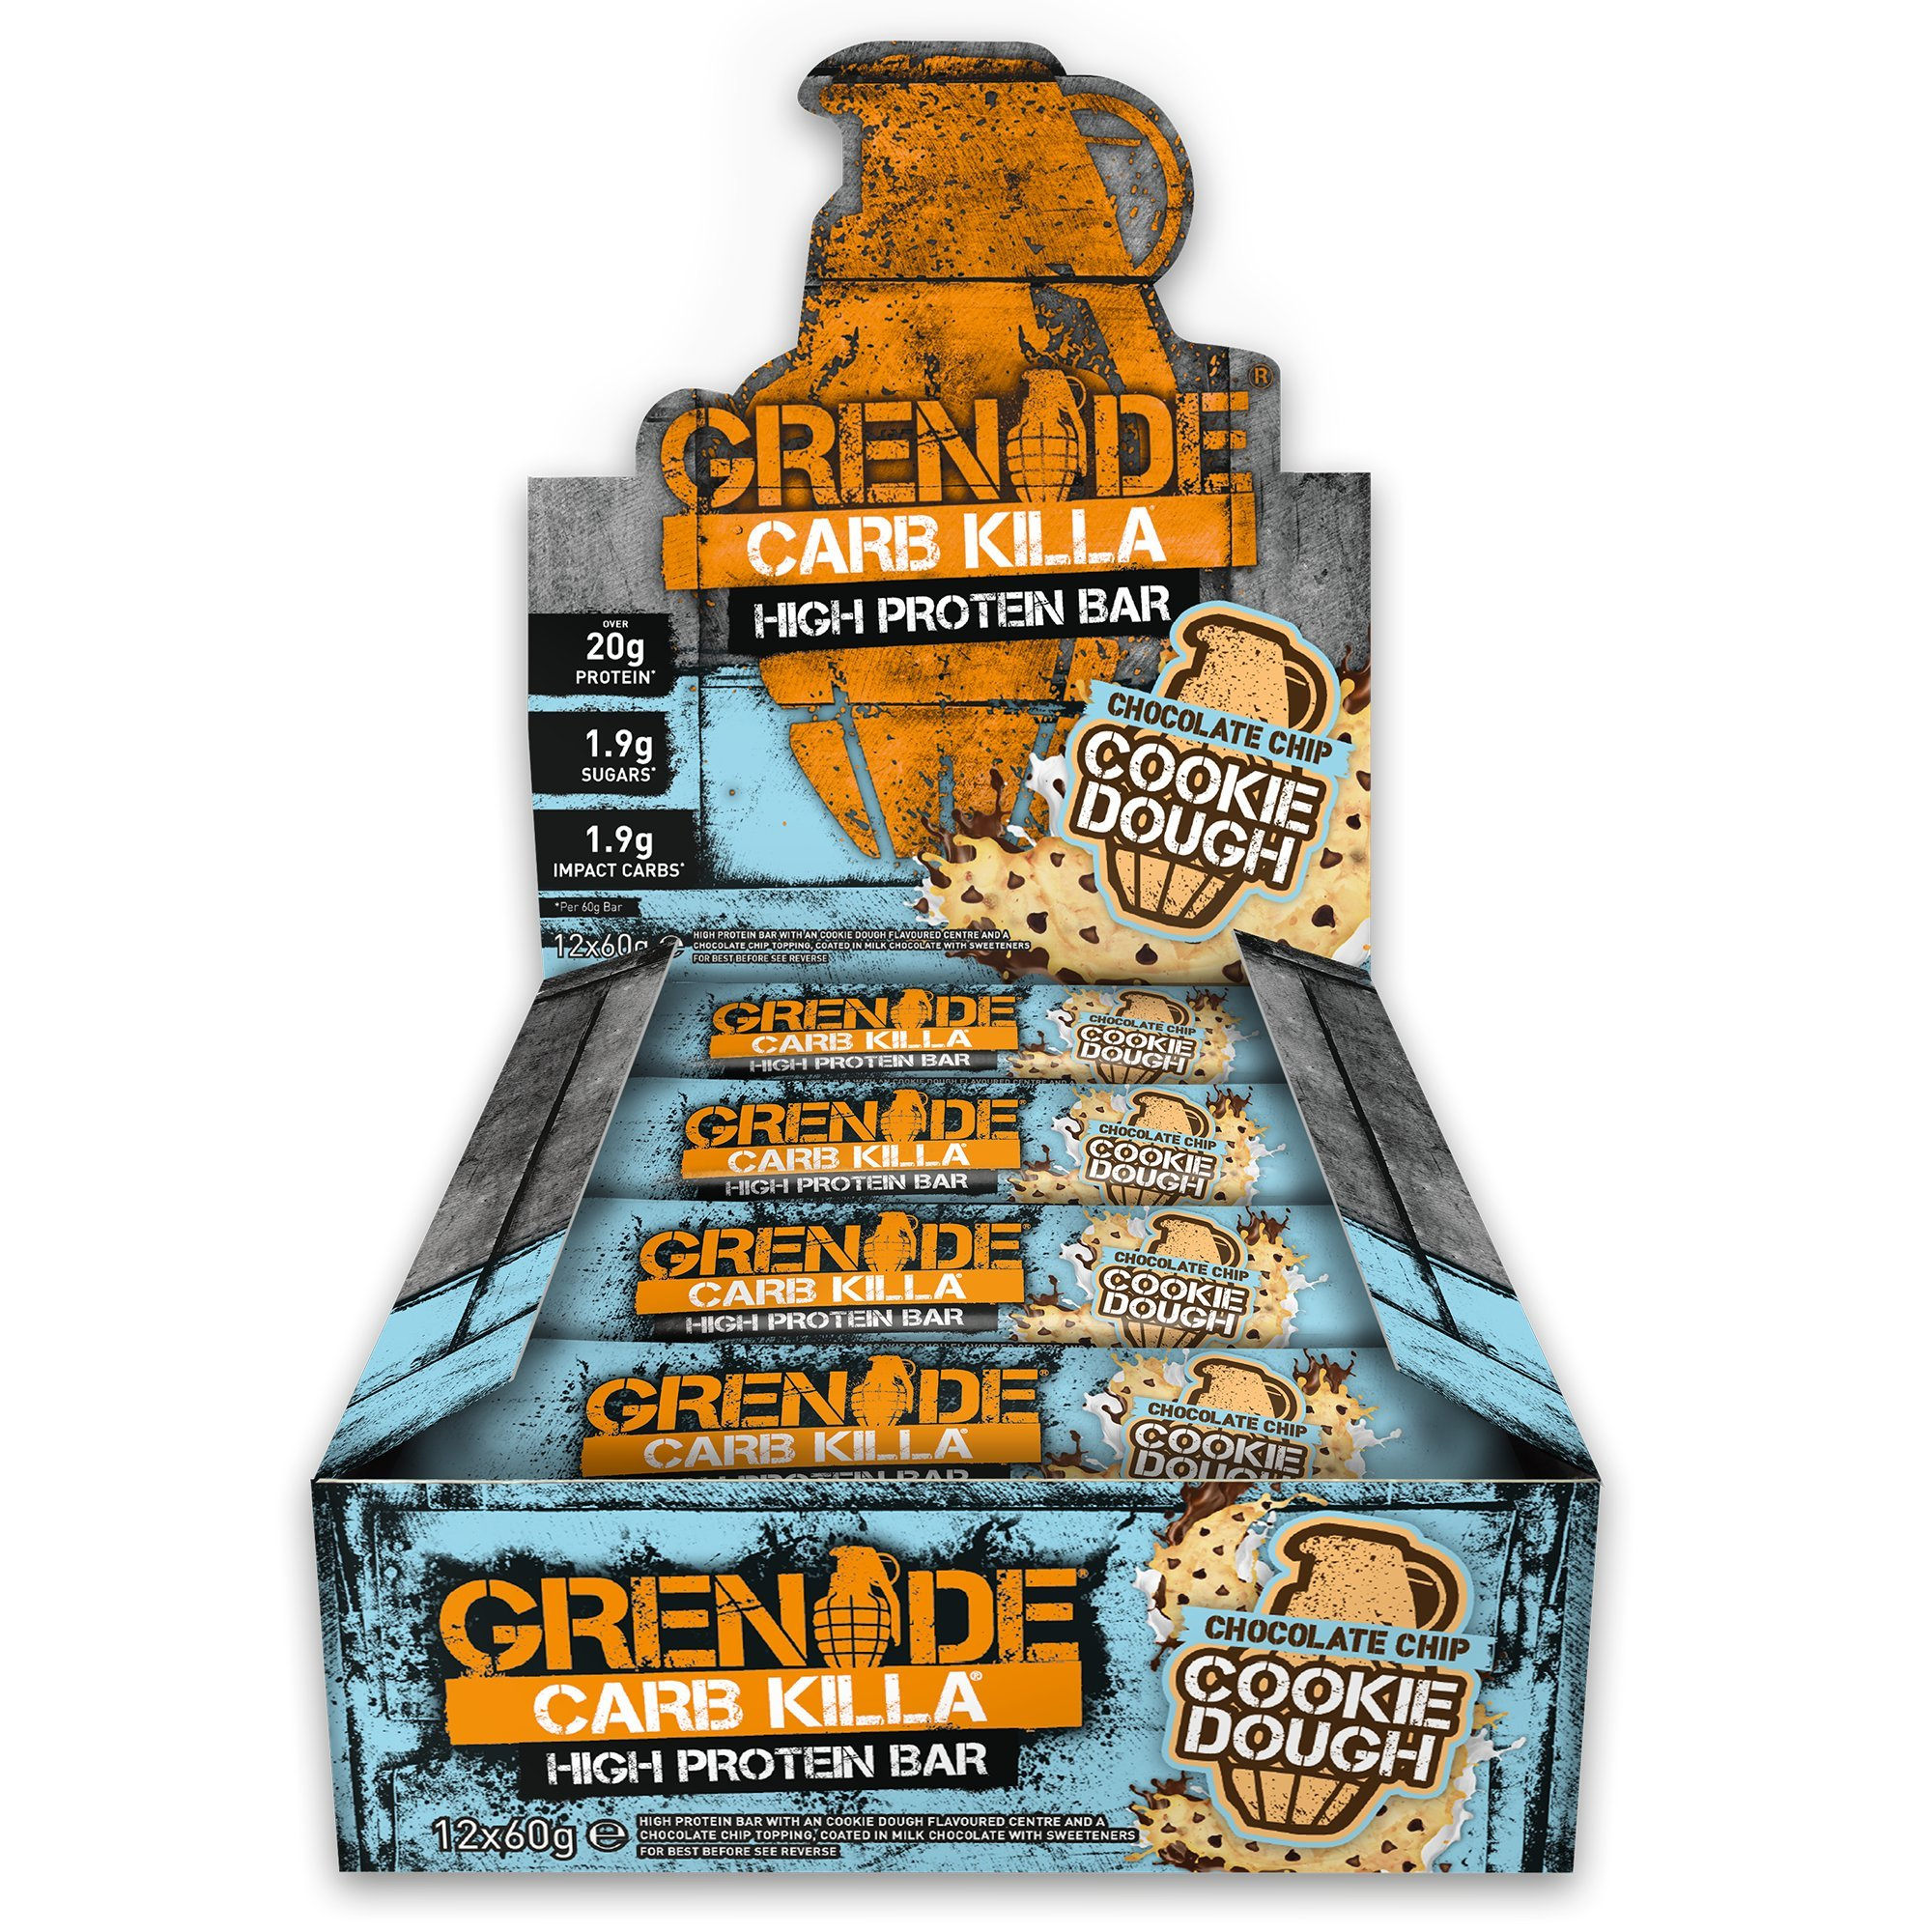 Grenade Carb Killa High Protein and Low Carb Bar, 12 x 60 g - Choc Chip Cookie Dough product image